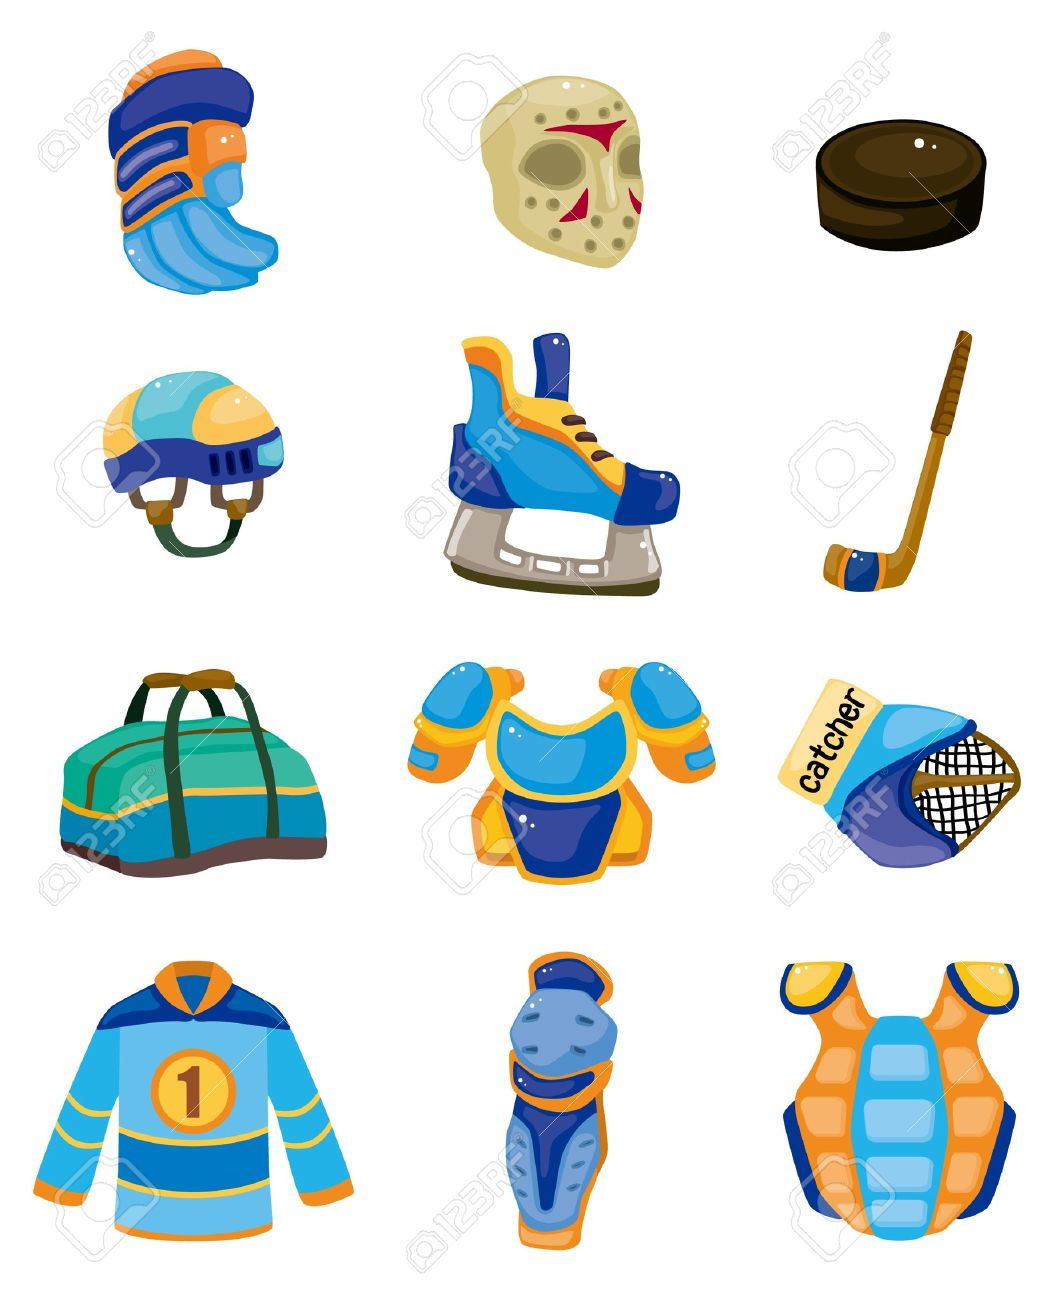 996 Hockey Protection Stock Illustrations, Cliparts And Royalty.